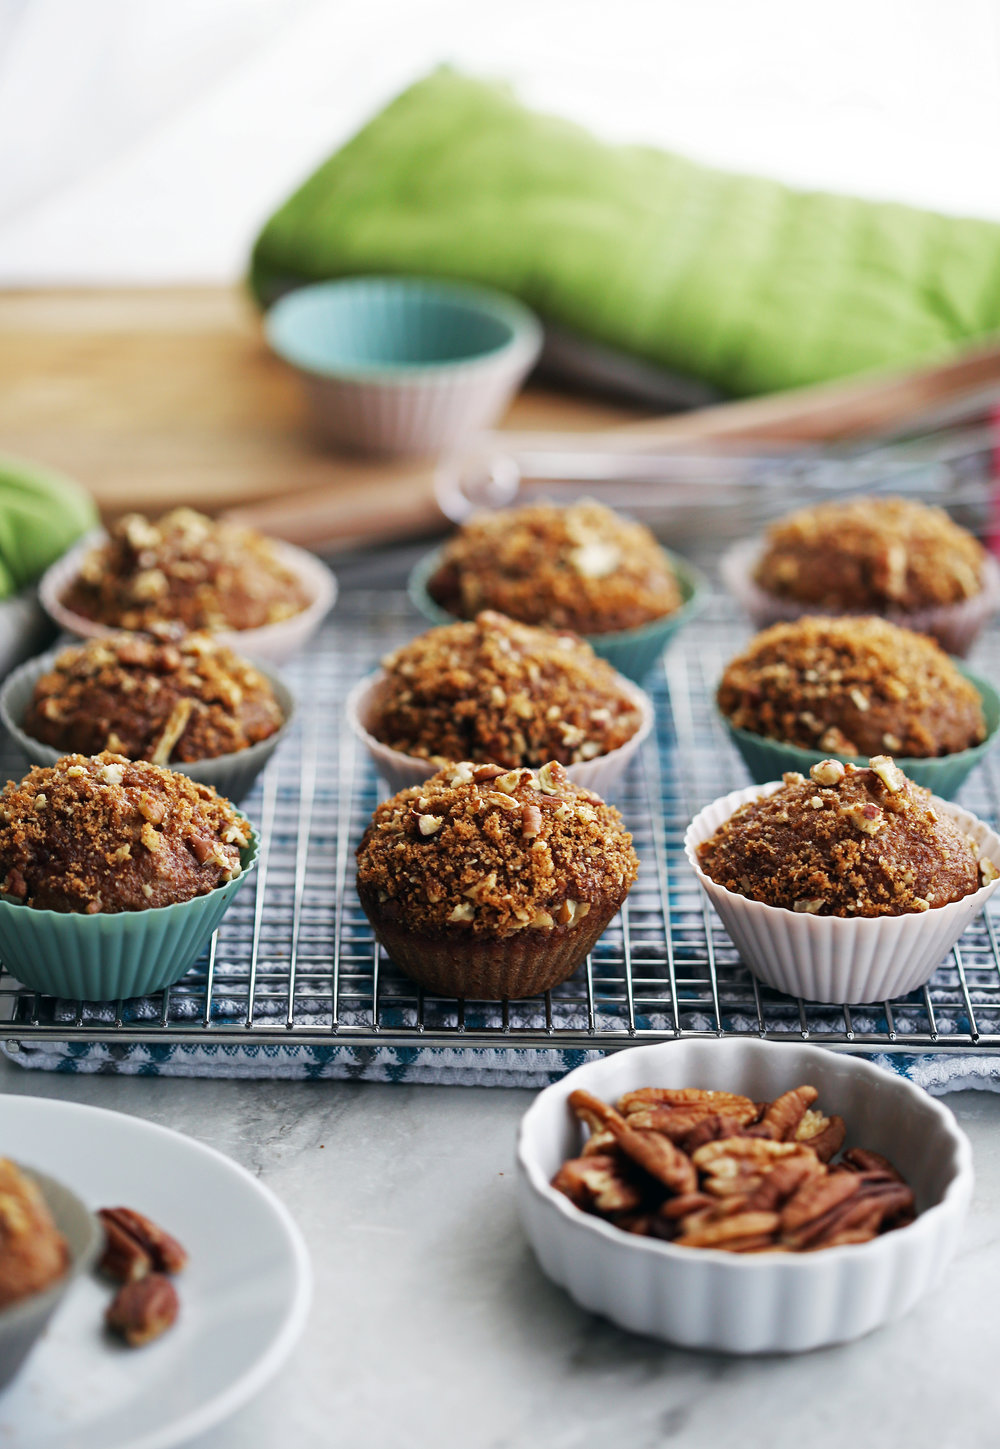 Cinnamon pecan applesauce muffins with a crunchy pecan topping on a cooling rack.